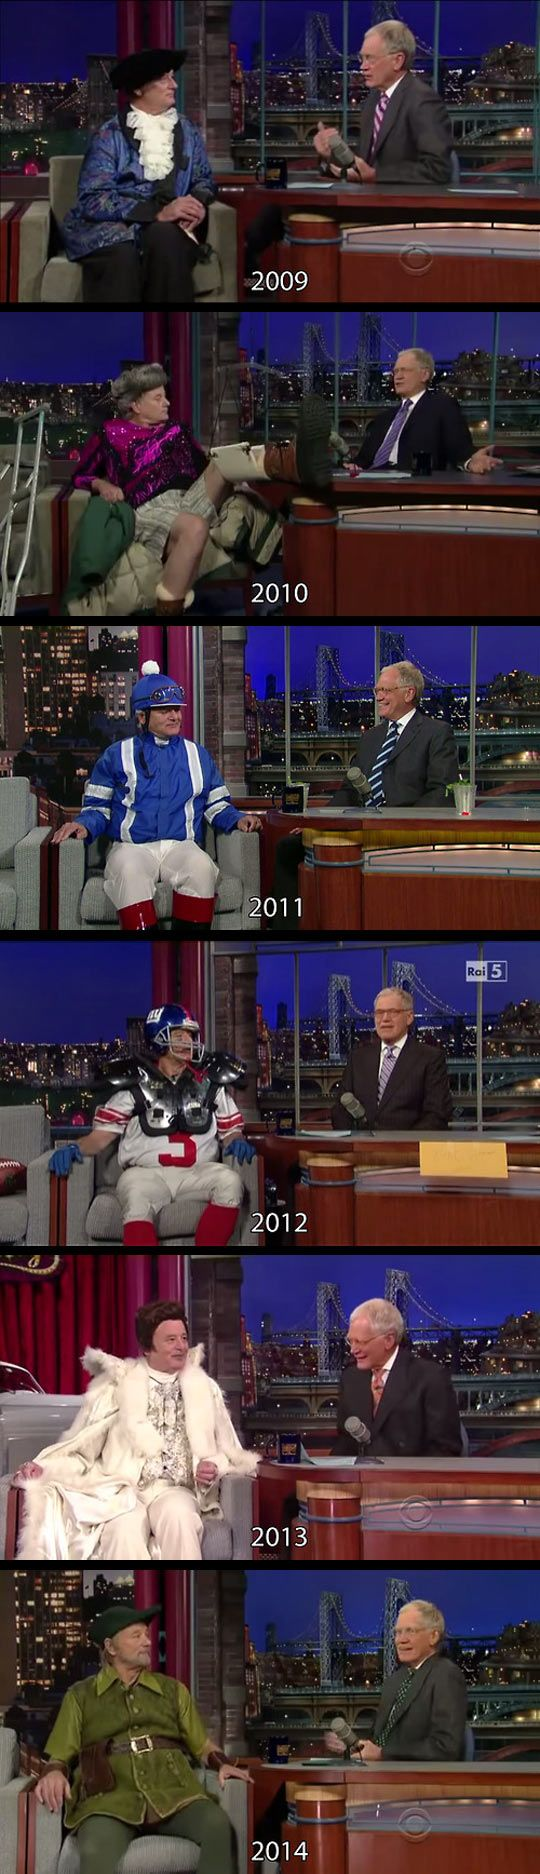 Bill Murray On Letterman- and this is why I love him haha bill fuckin murray!